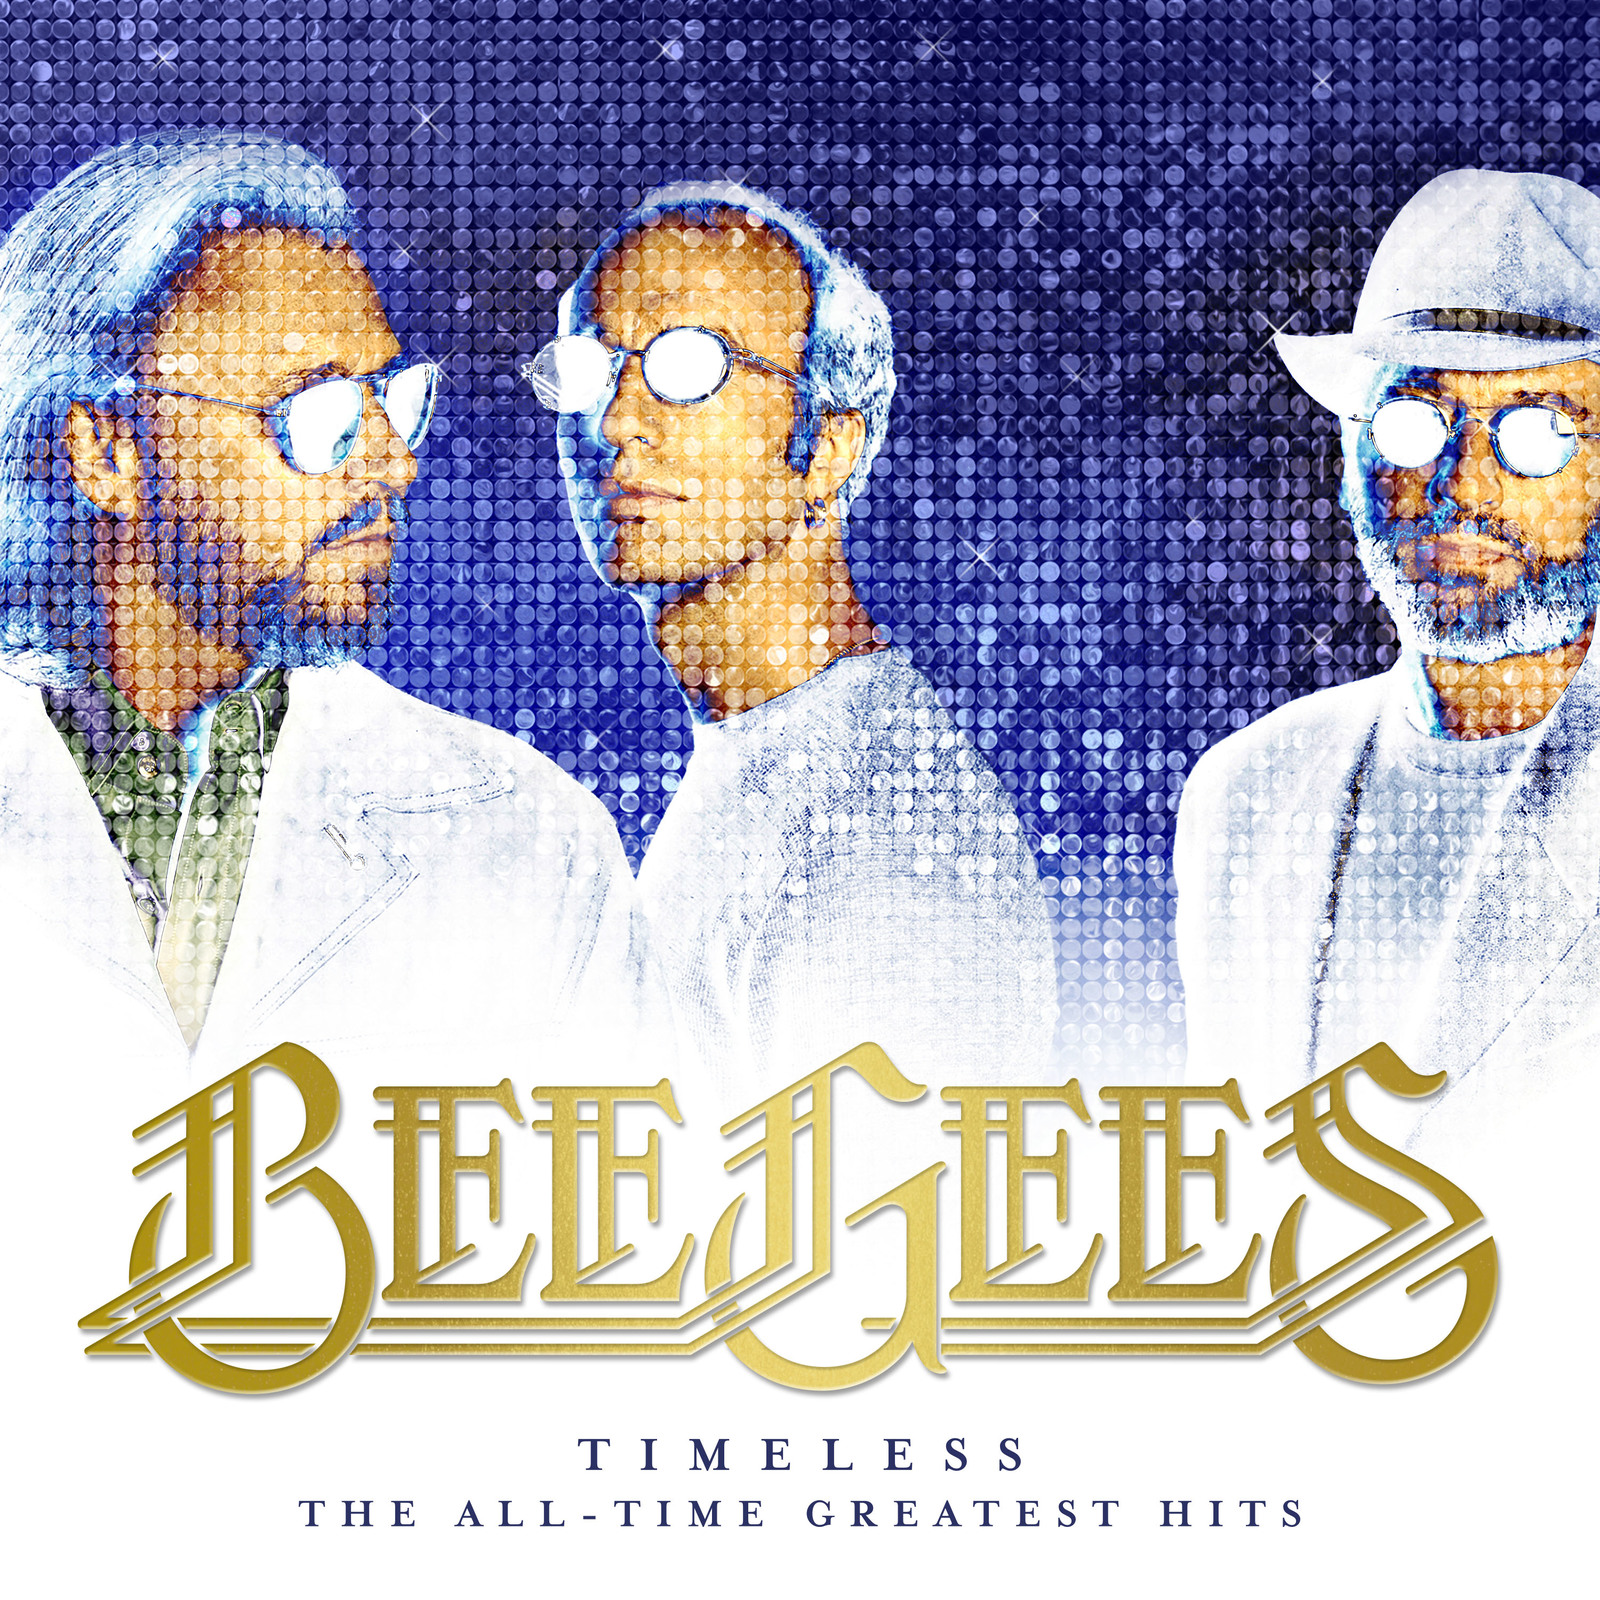 Timeless - The All Time Greatest Hits by The Bee Gees image